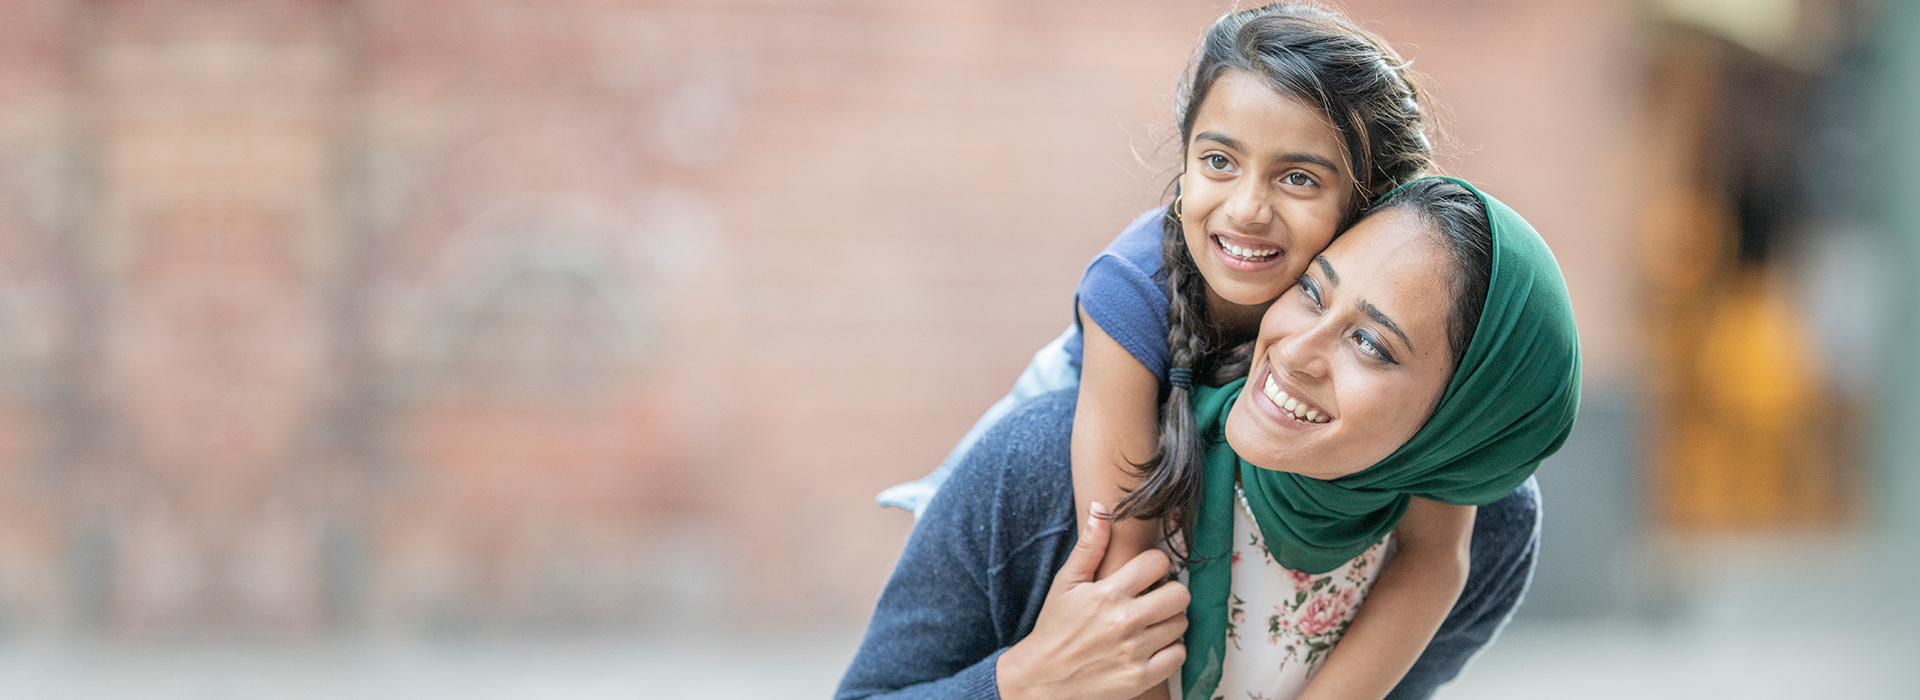 A mother wearing a green hijab with a small girl who has braids in her hair on her back.